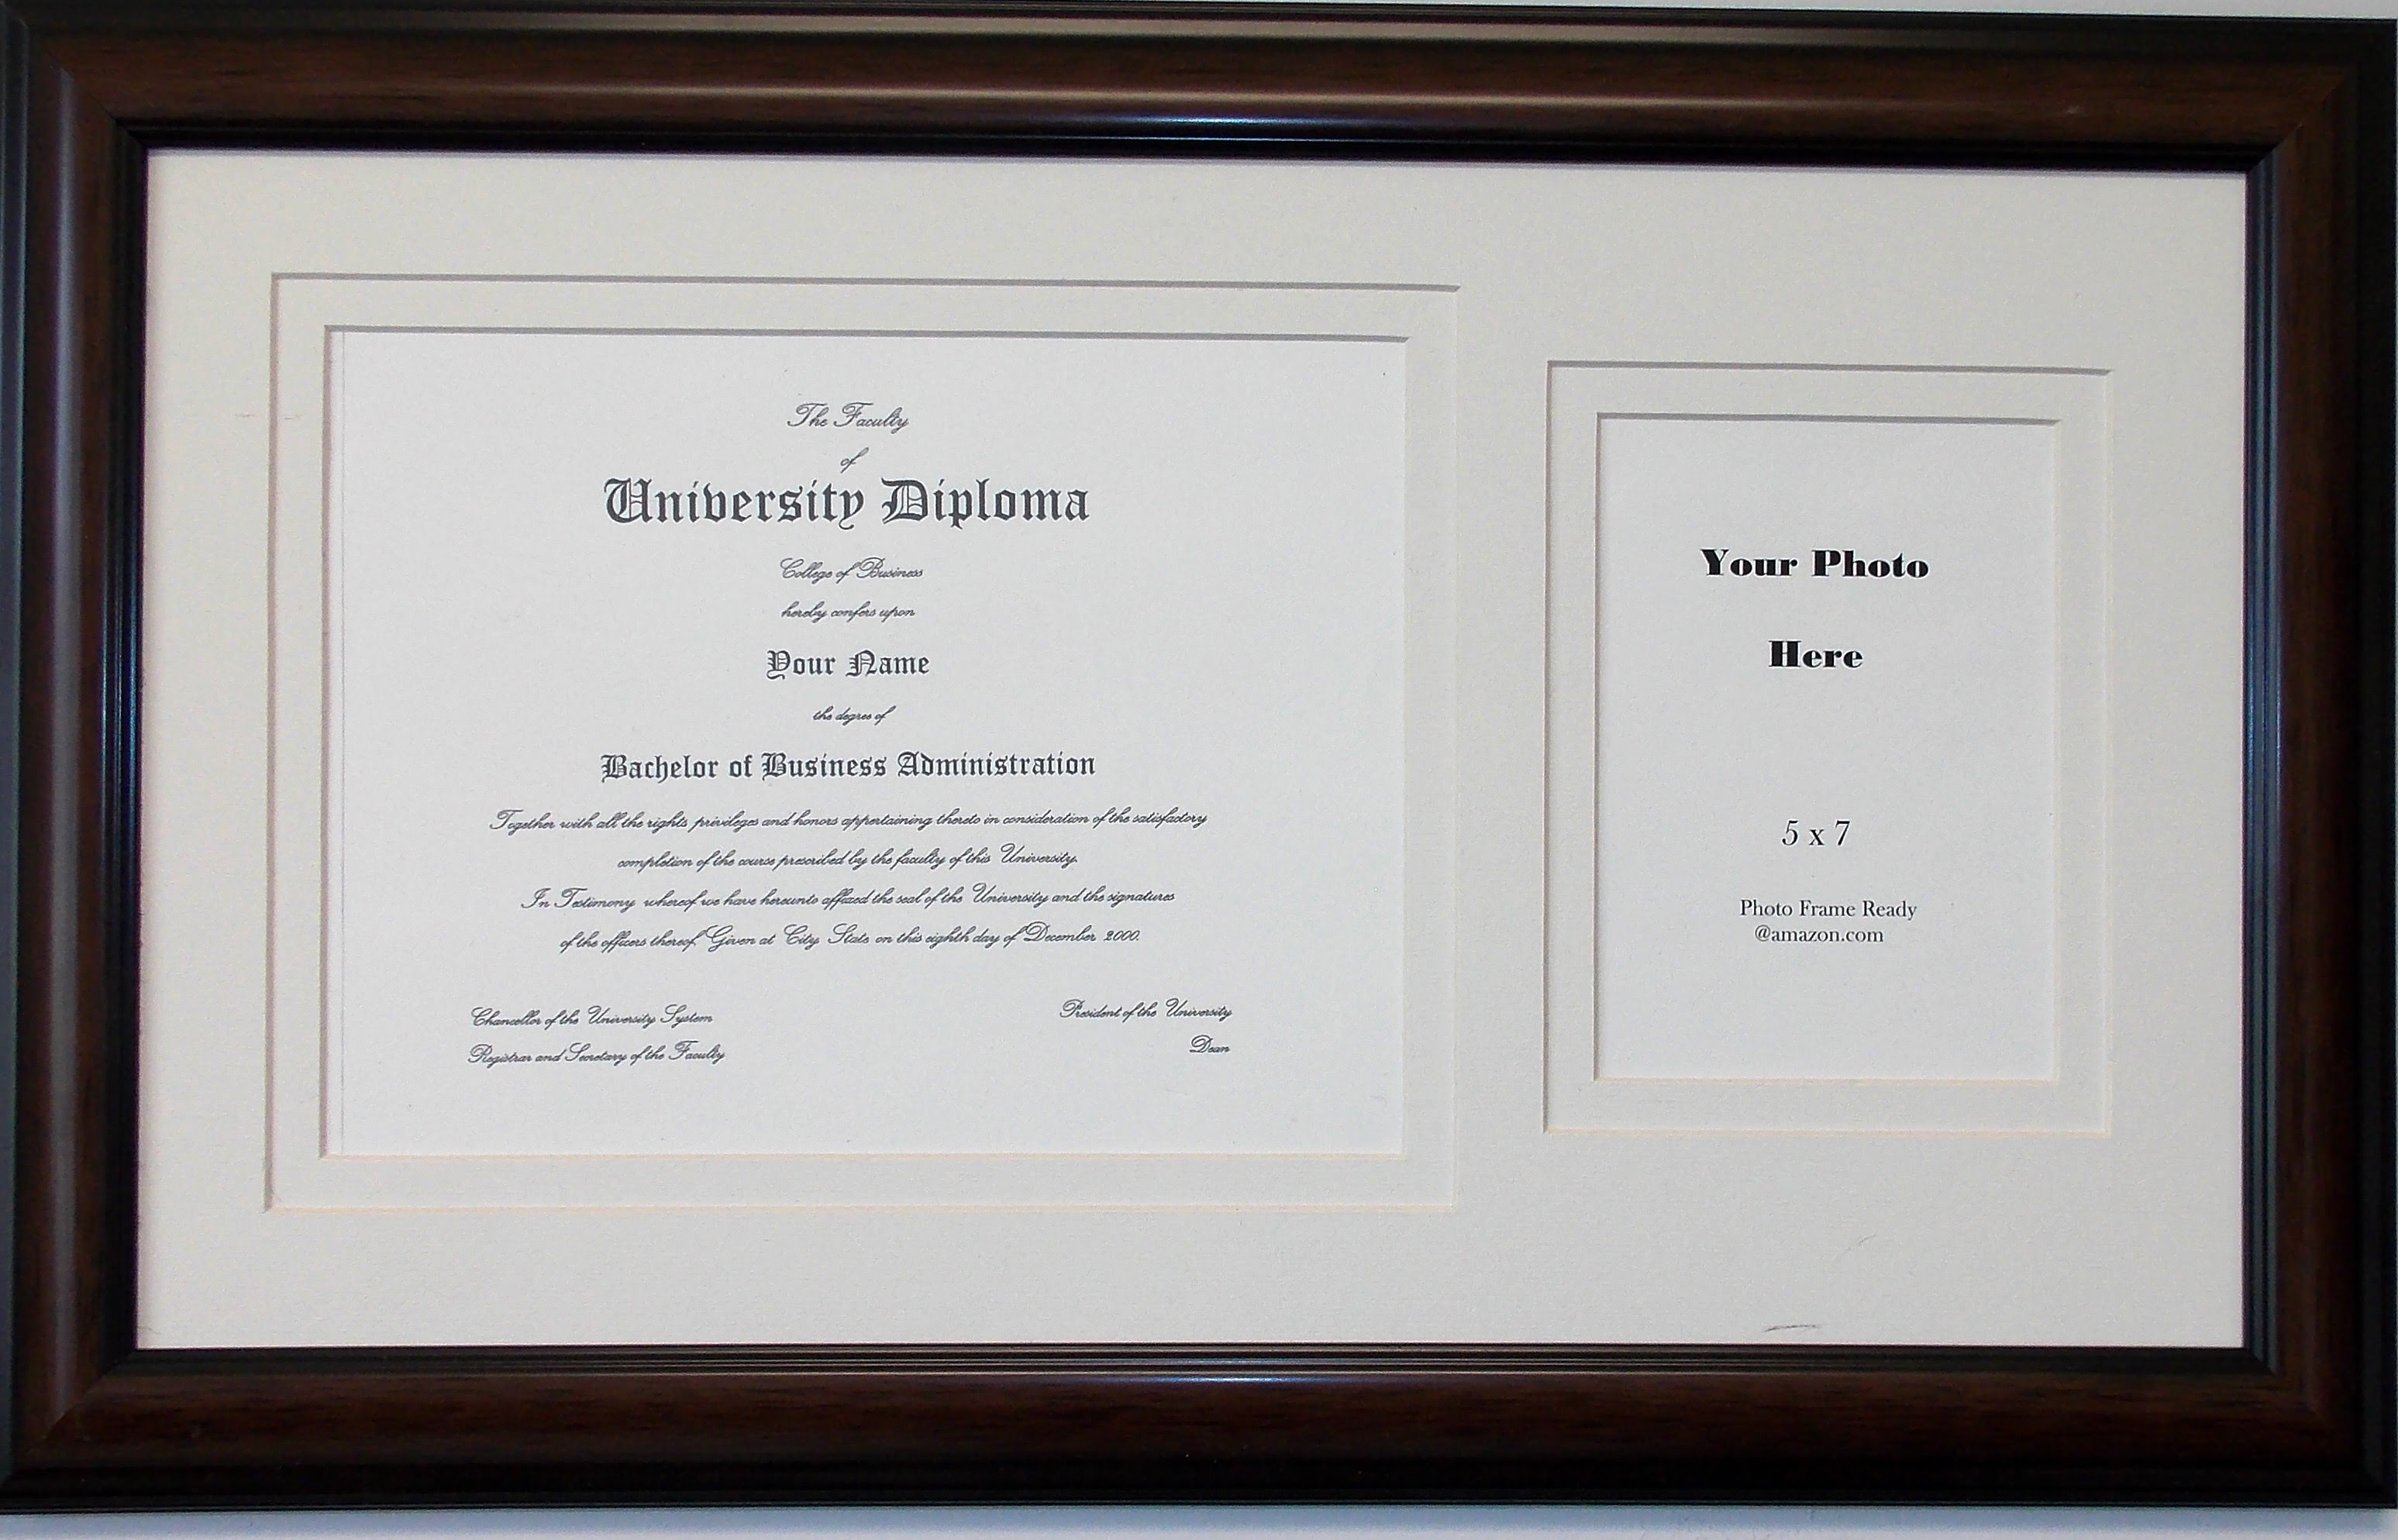 Graduation Certificate Matted 8 12 X 11 Photo Frame With 5 X 7